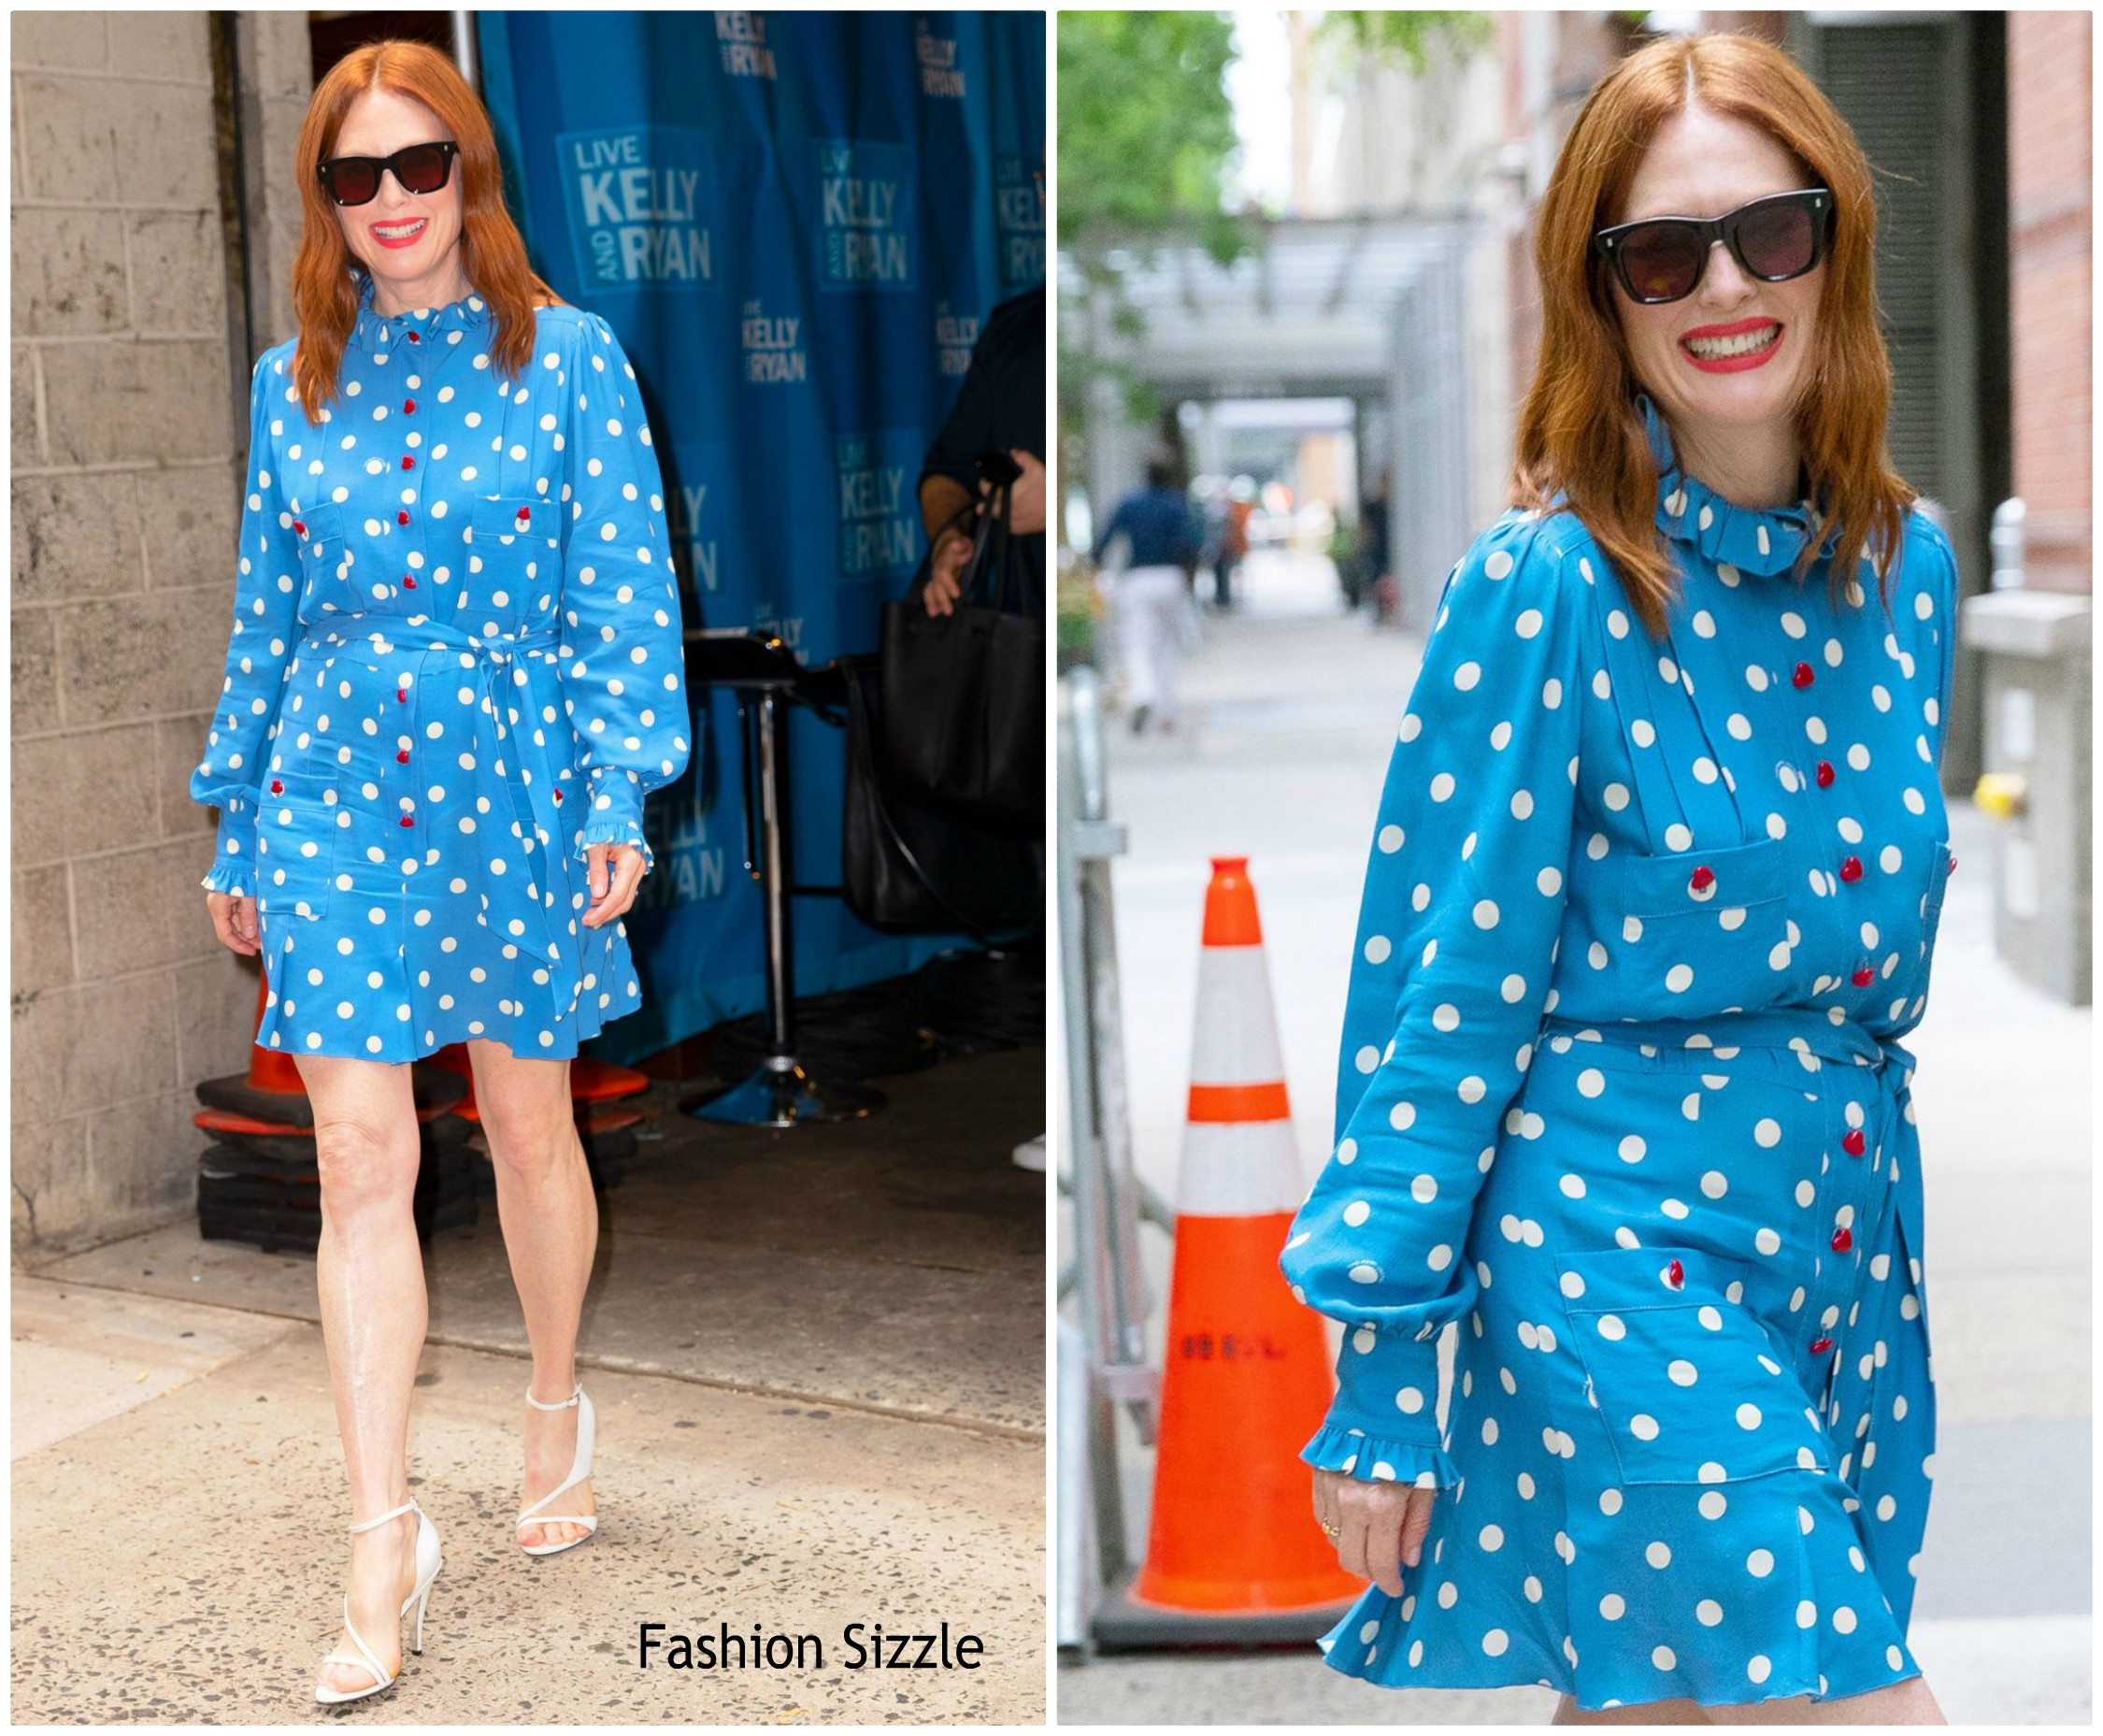 julianne-moore-in-marc-jacobs-kelly-and-ryan-show